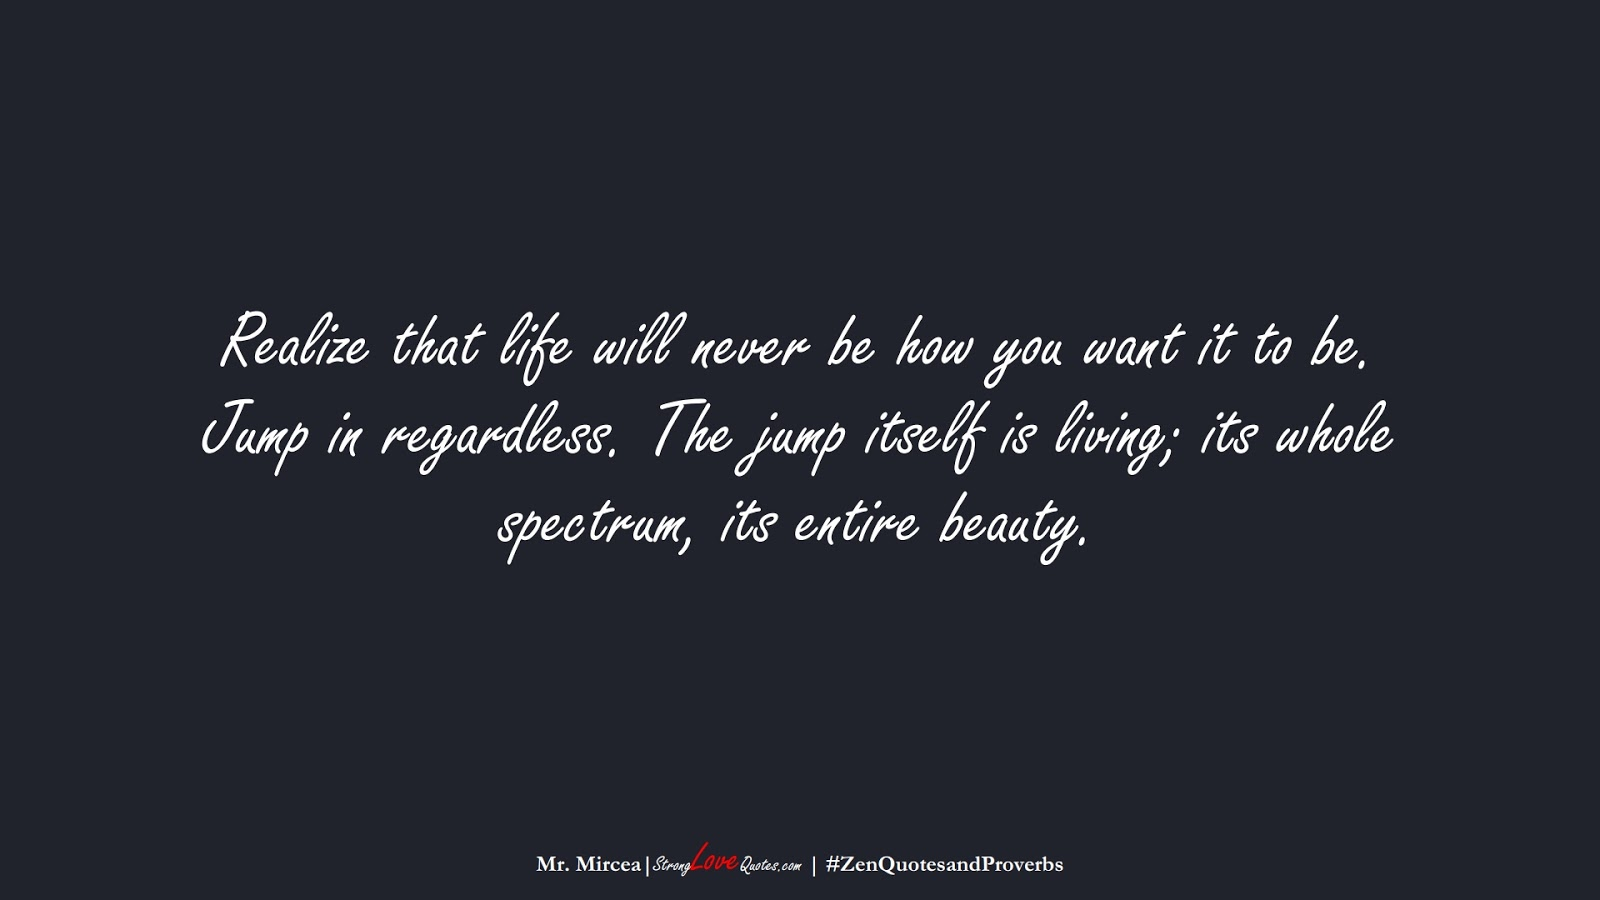 Realize that life will never be how you want it to be. Jump in regardless. The jump itself is living; its whole spectrum, its entire beauty. (Mr. Mircea);  #ZenQuotesandProverbs